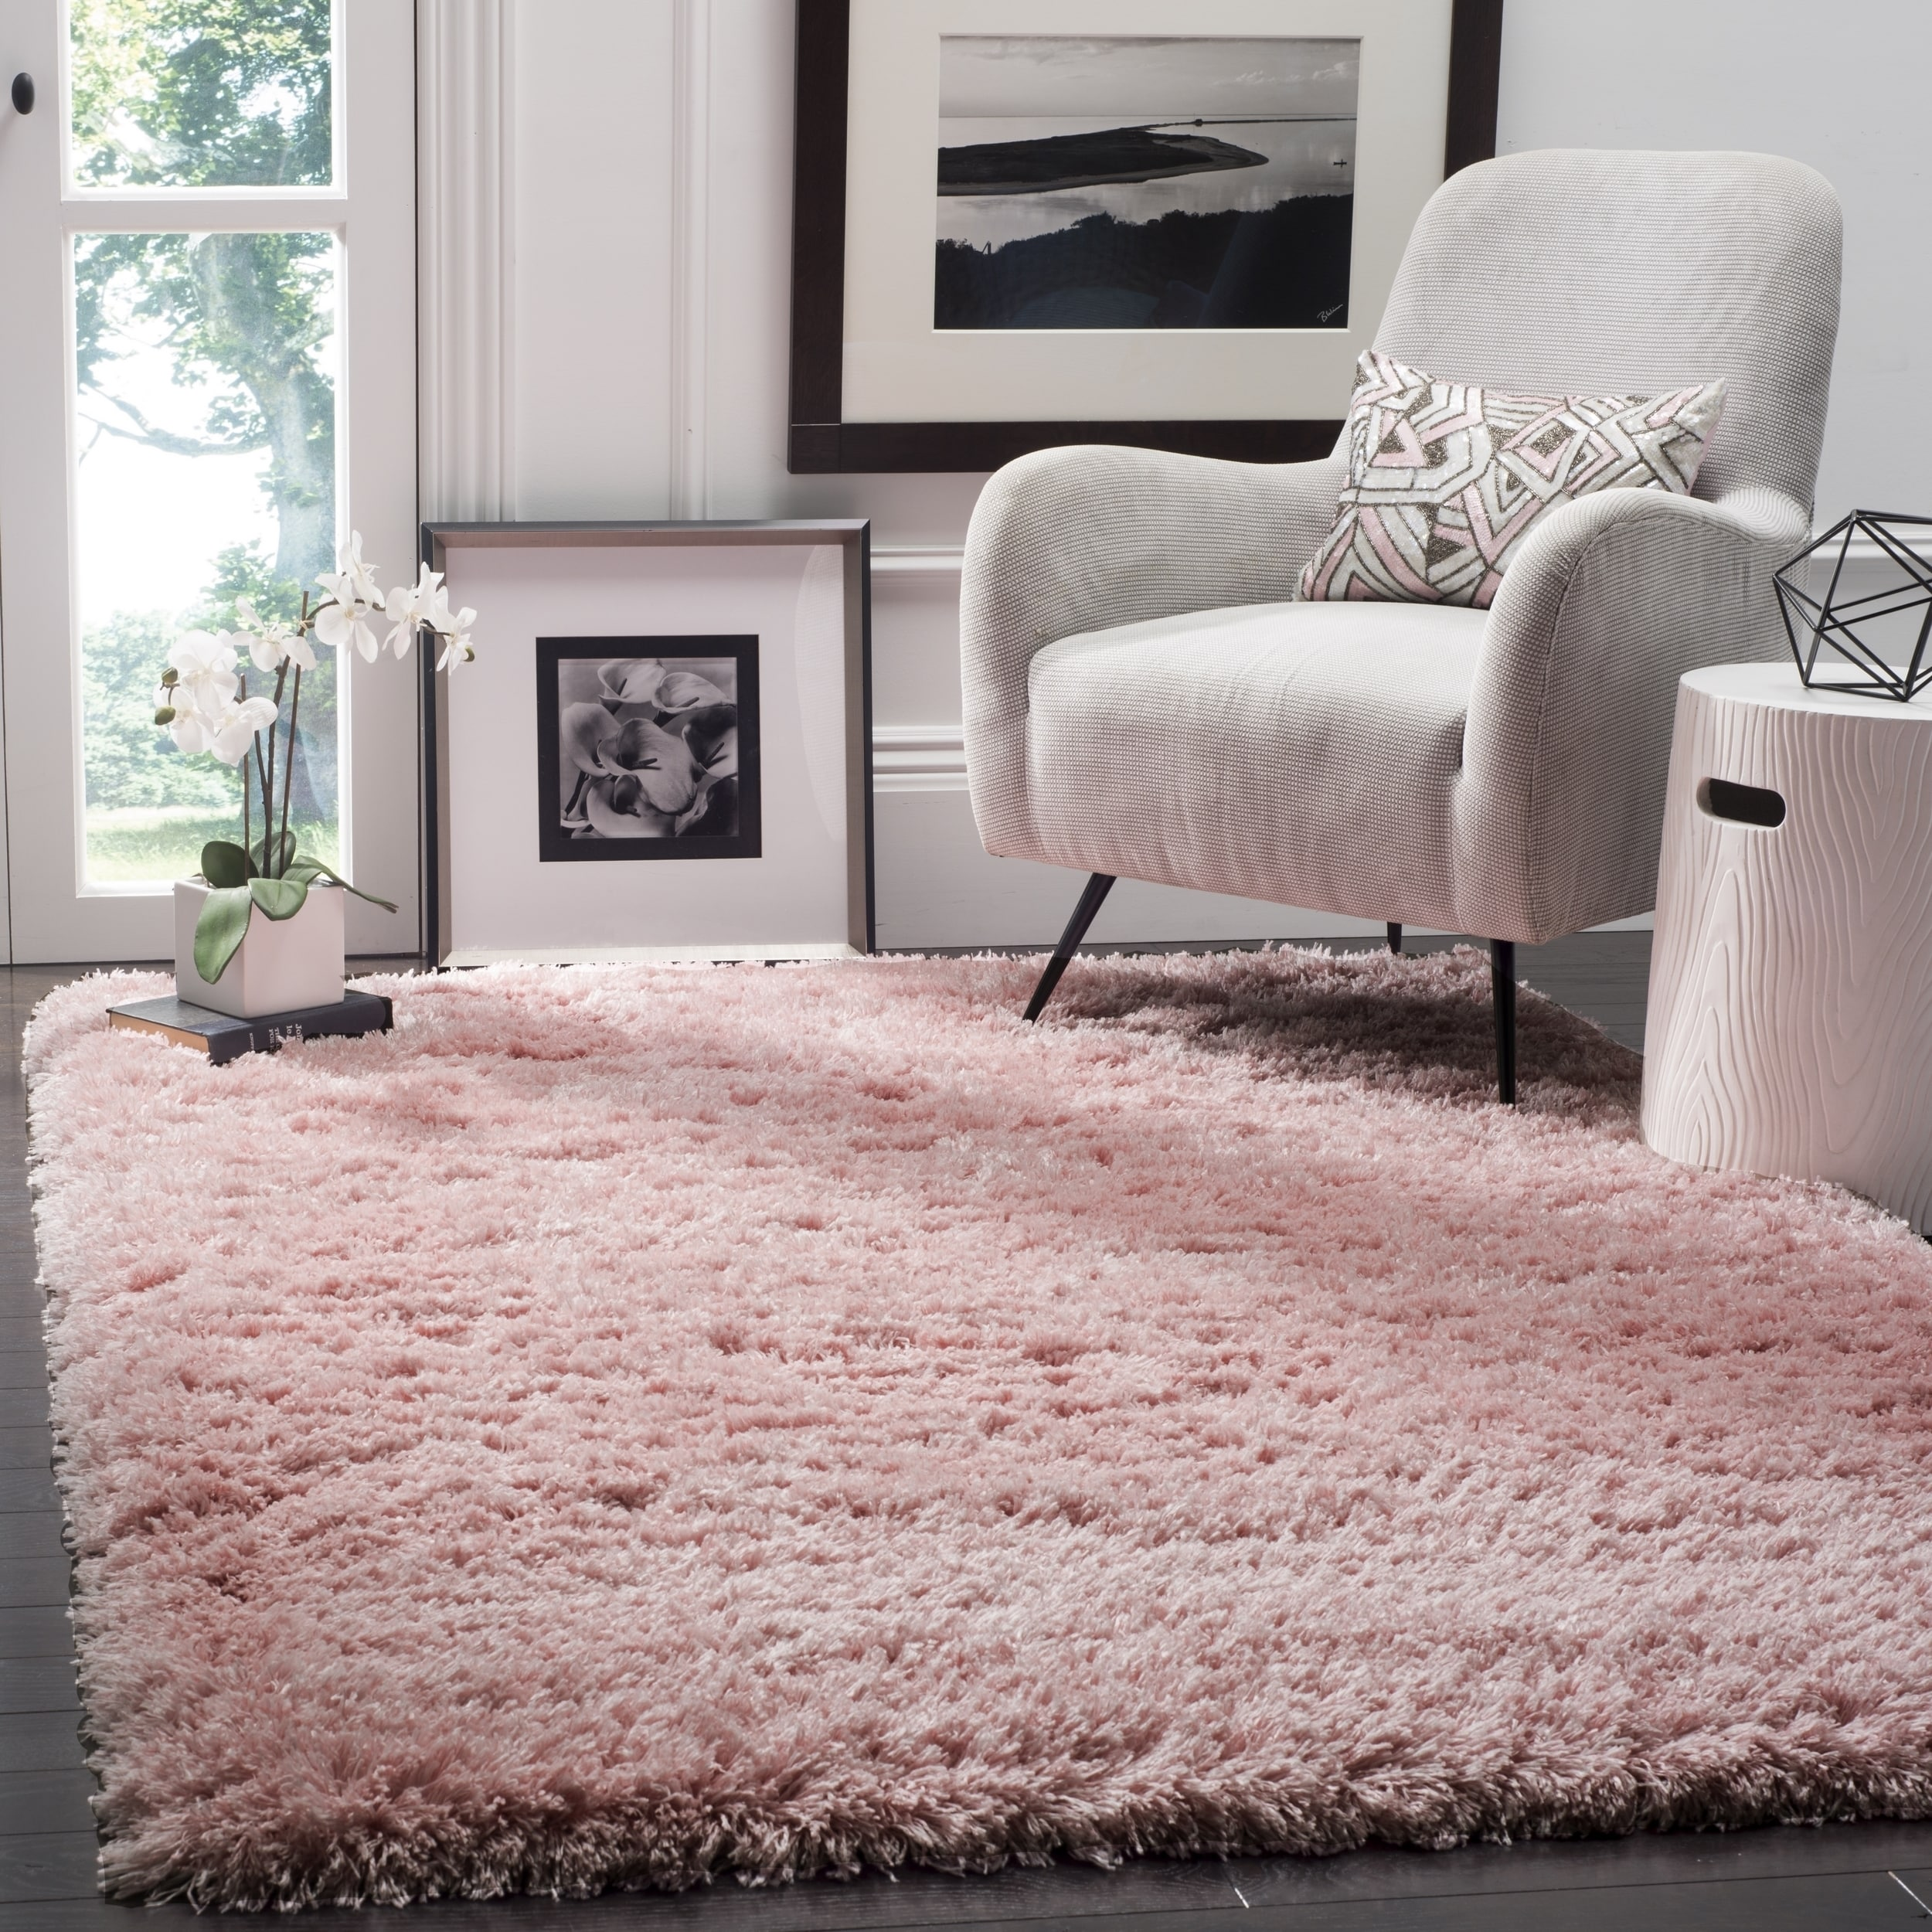 make place beautiful designinyou maintenance rug the look carpet that shag easy with